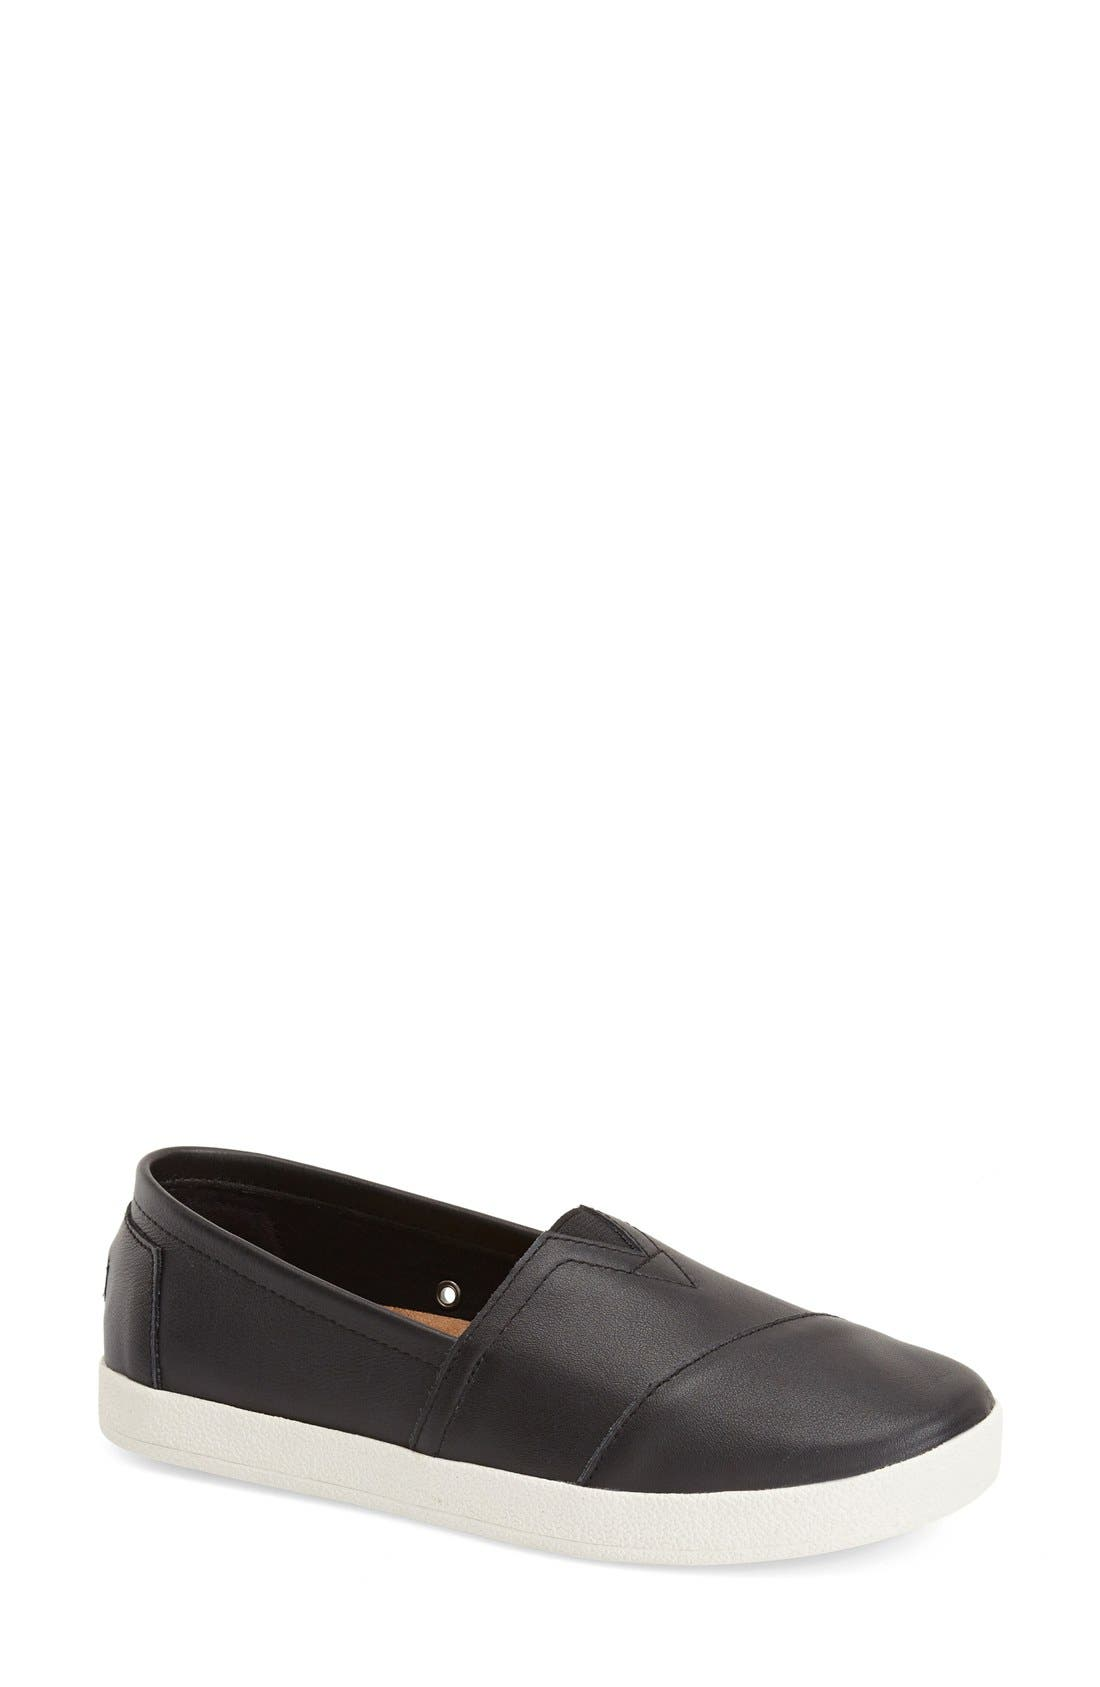 TOMS Avalon Slip-On